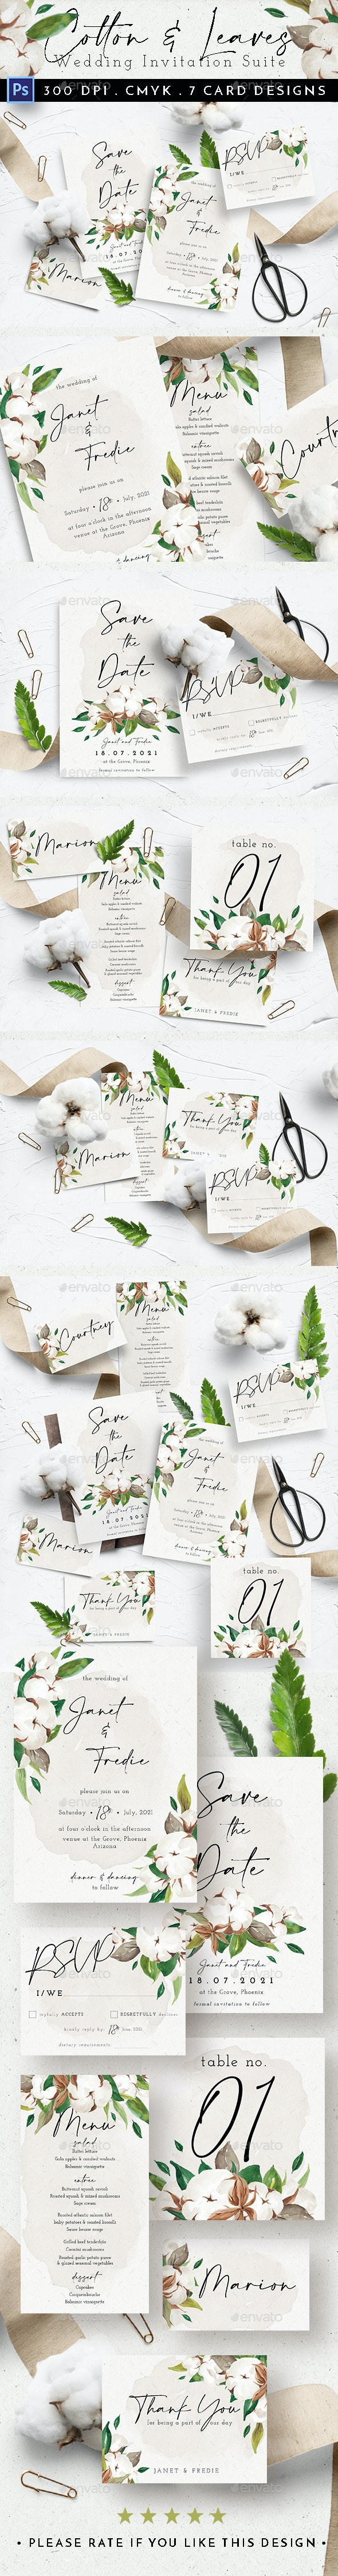 Cotton & Leaves Wedding Suite - Weddings Cards & Invites